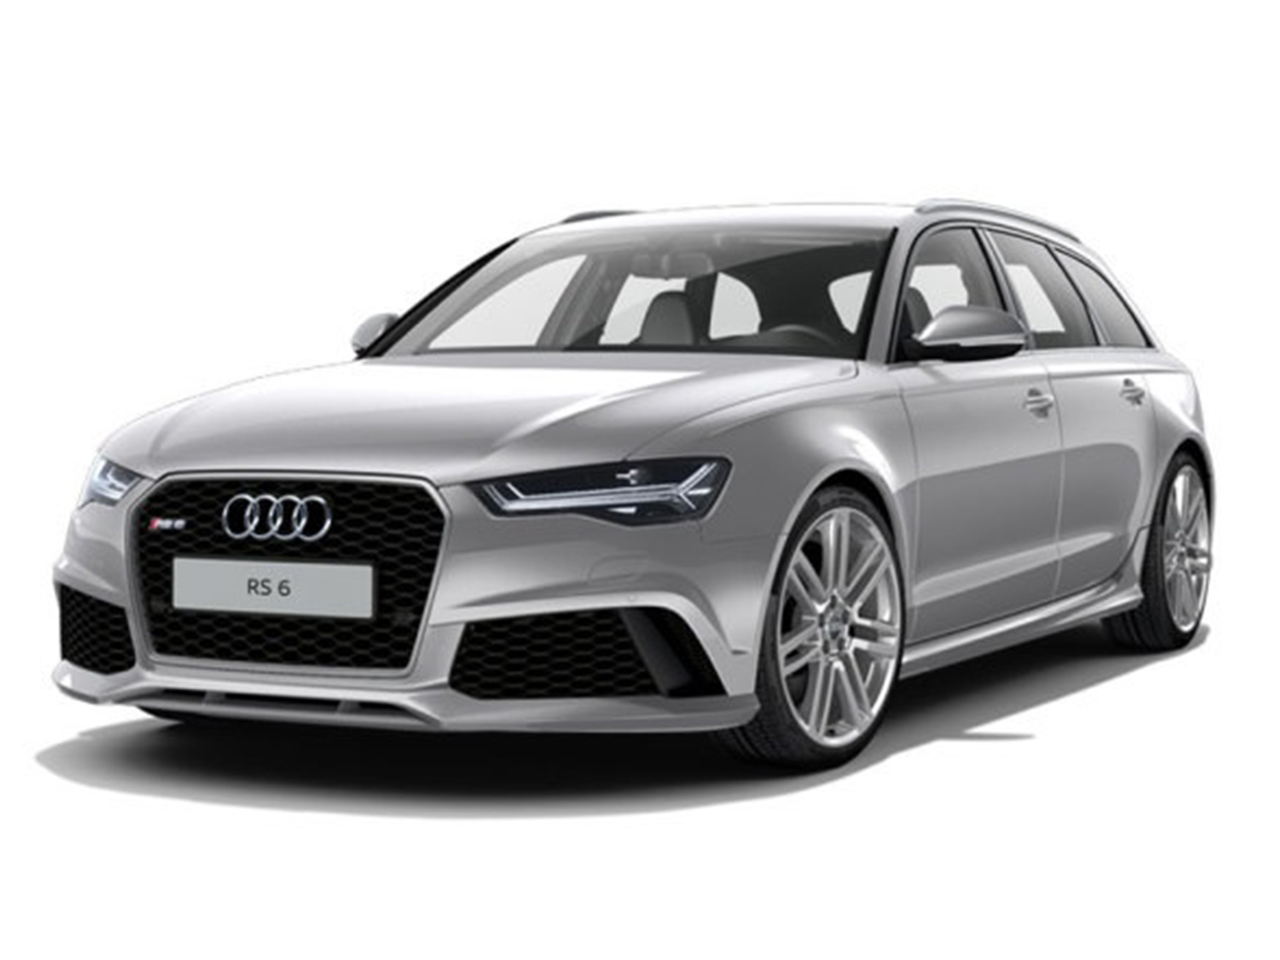 2018 audi rs6 avant prices in bahrain gulf specs reviews for manama yallamotor. Black Bedroom Furniture Sets. Home Design Ideas